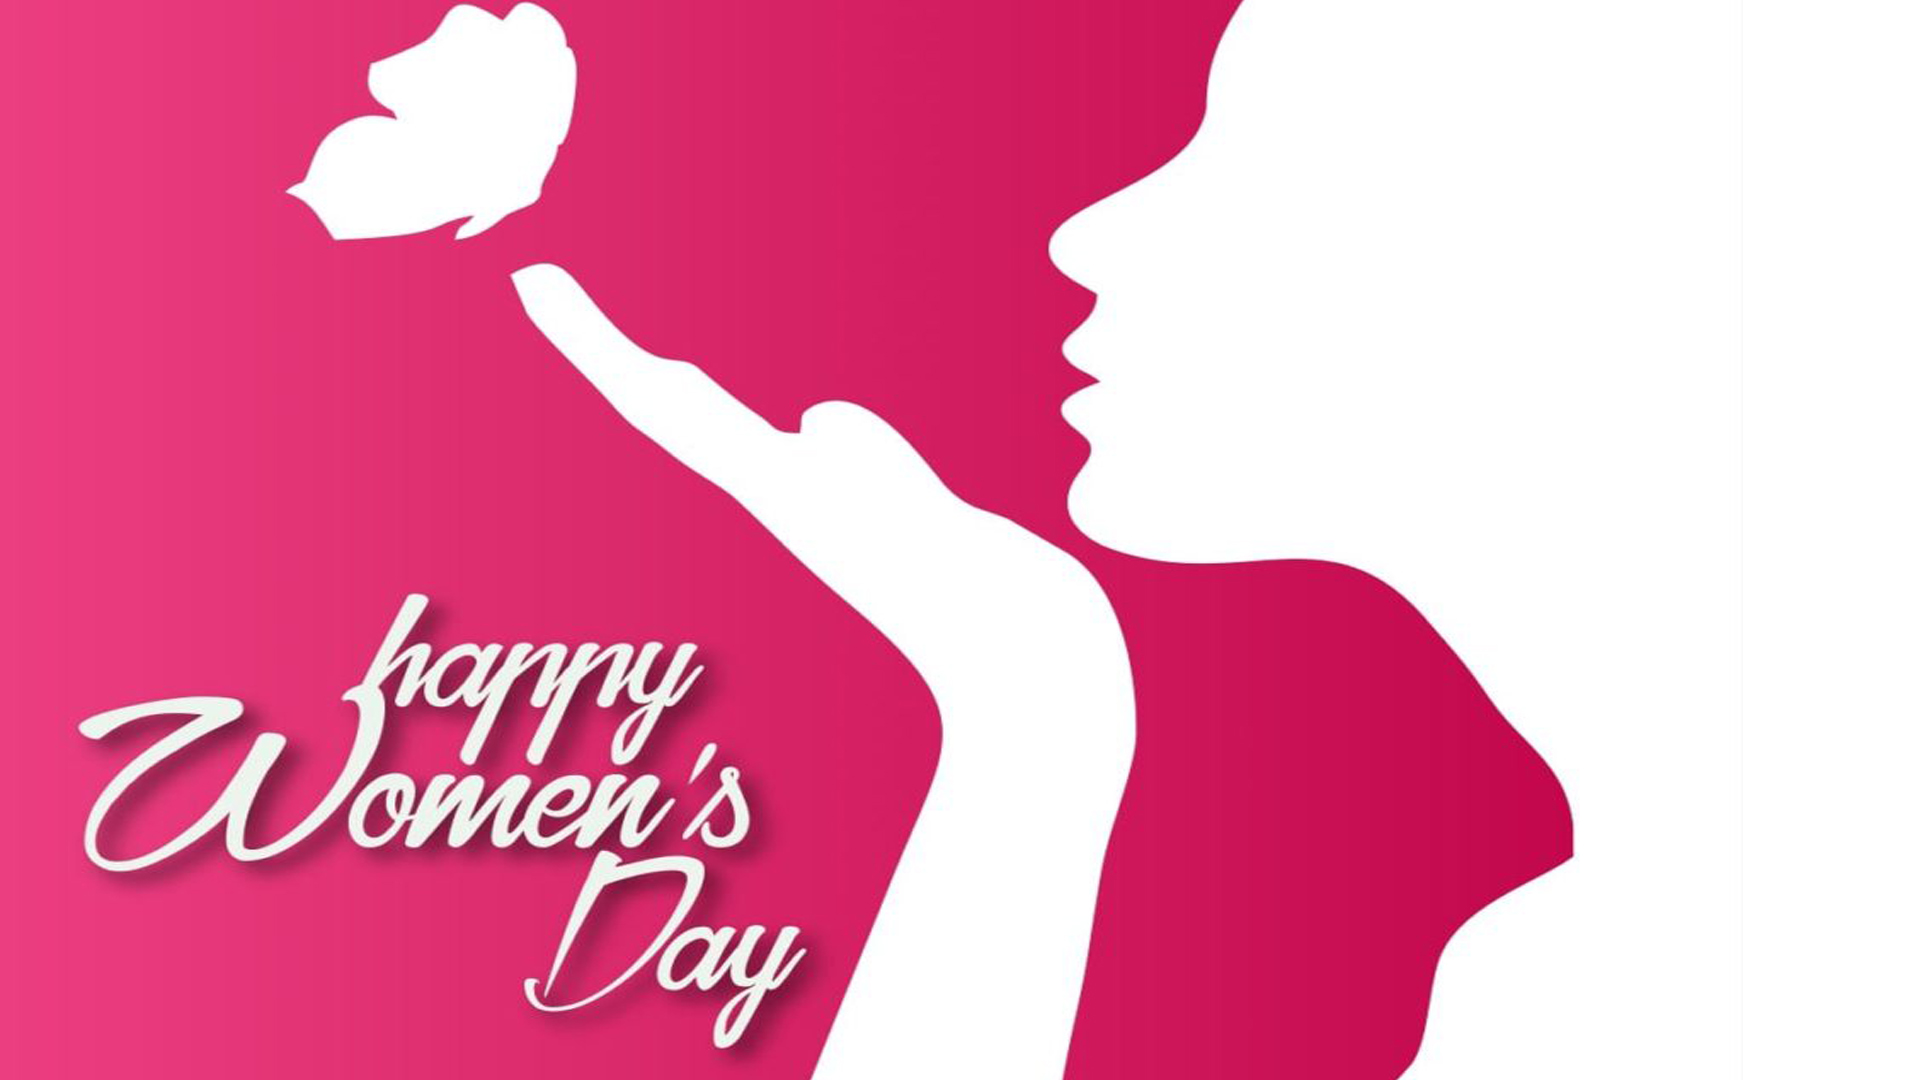 Happy Womens Day Images 2018 Womens Day 2018 Wishes